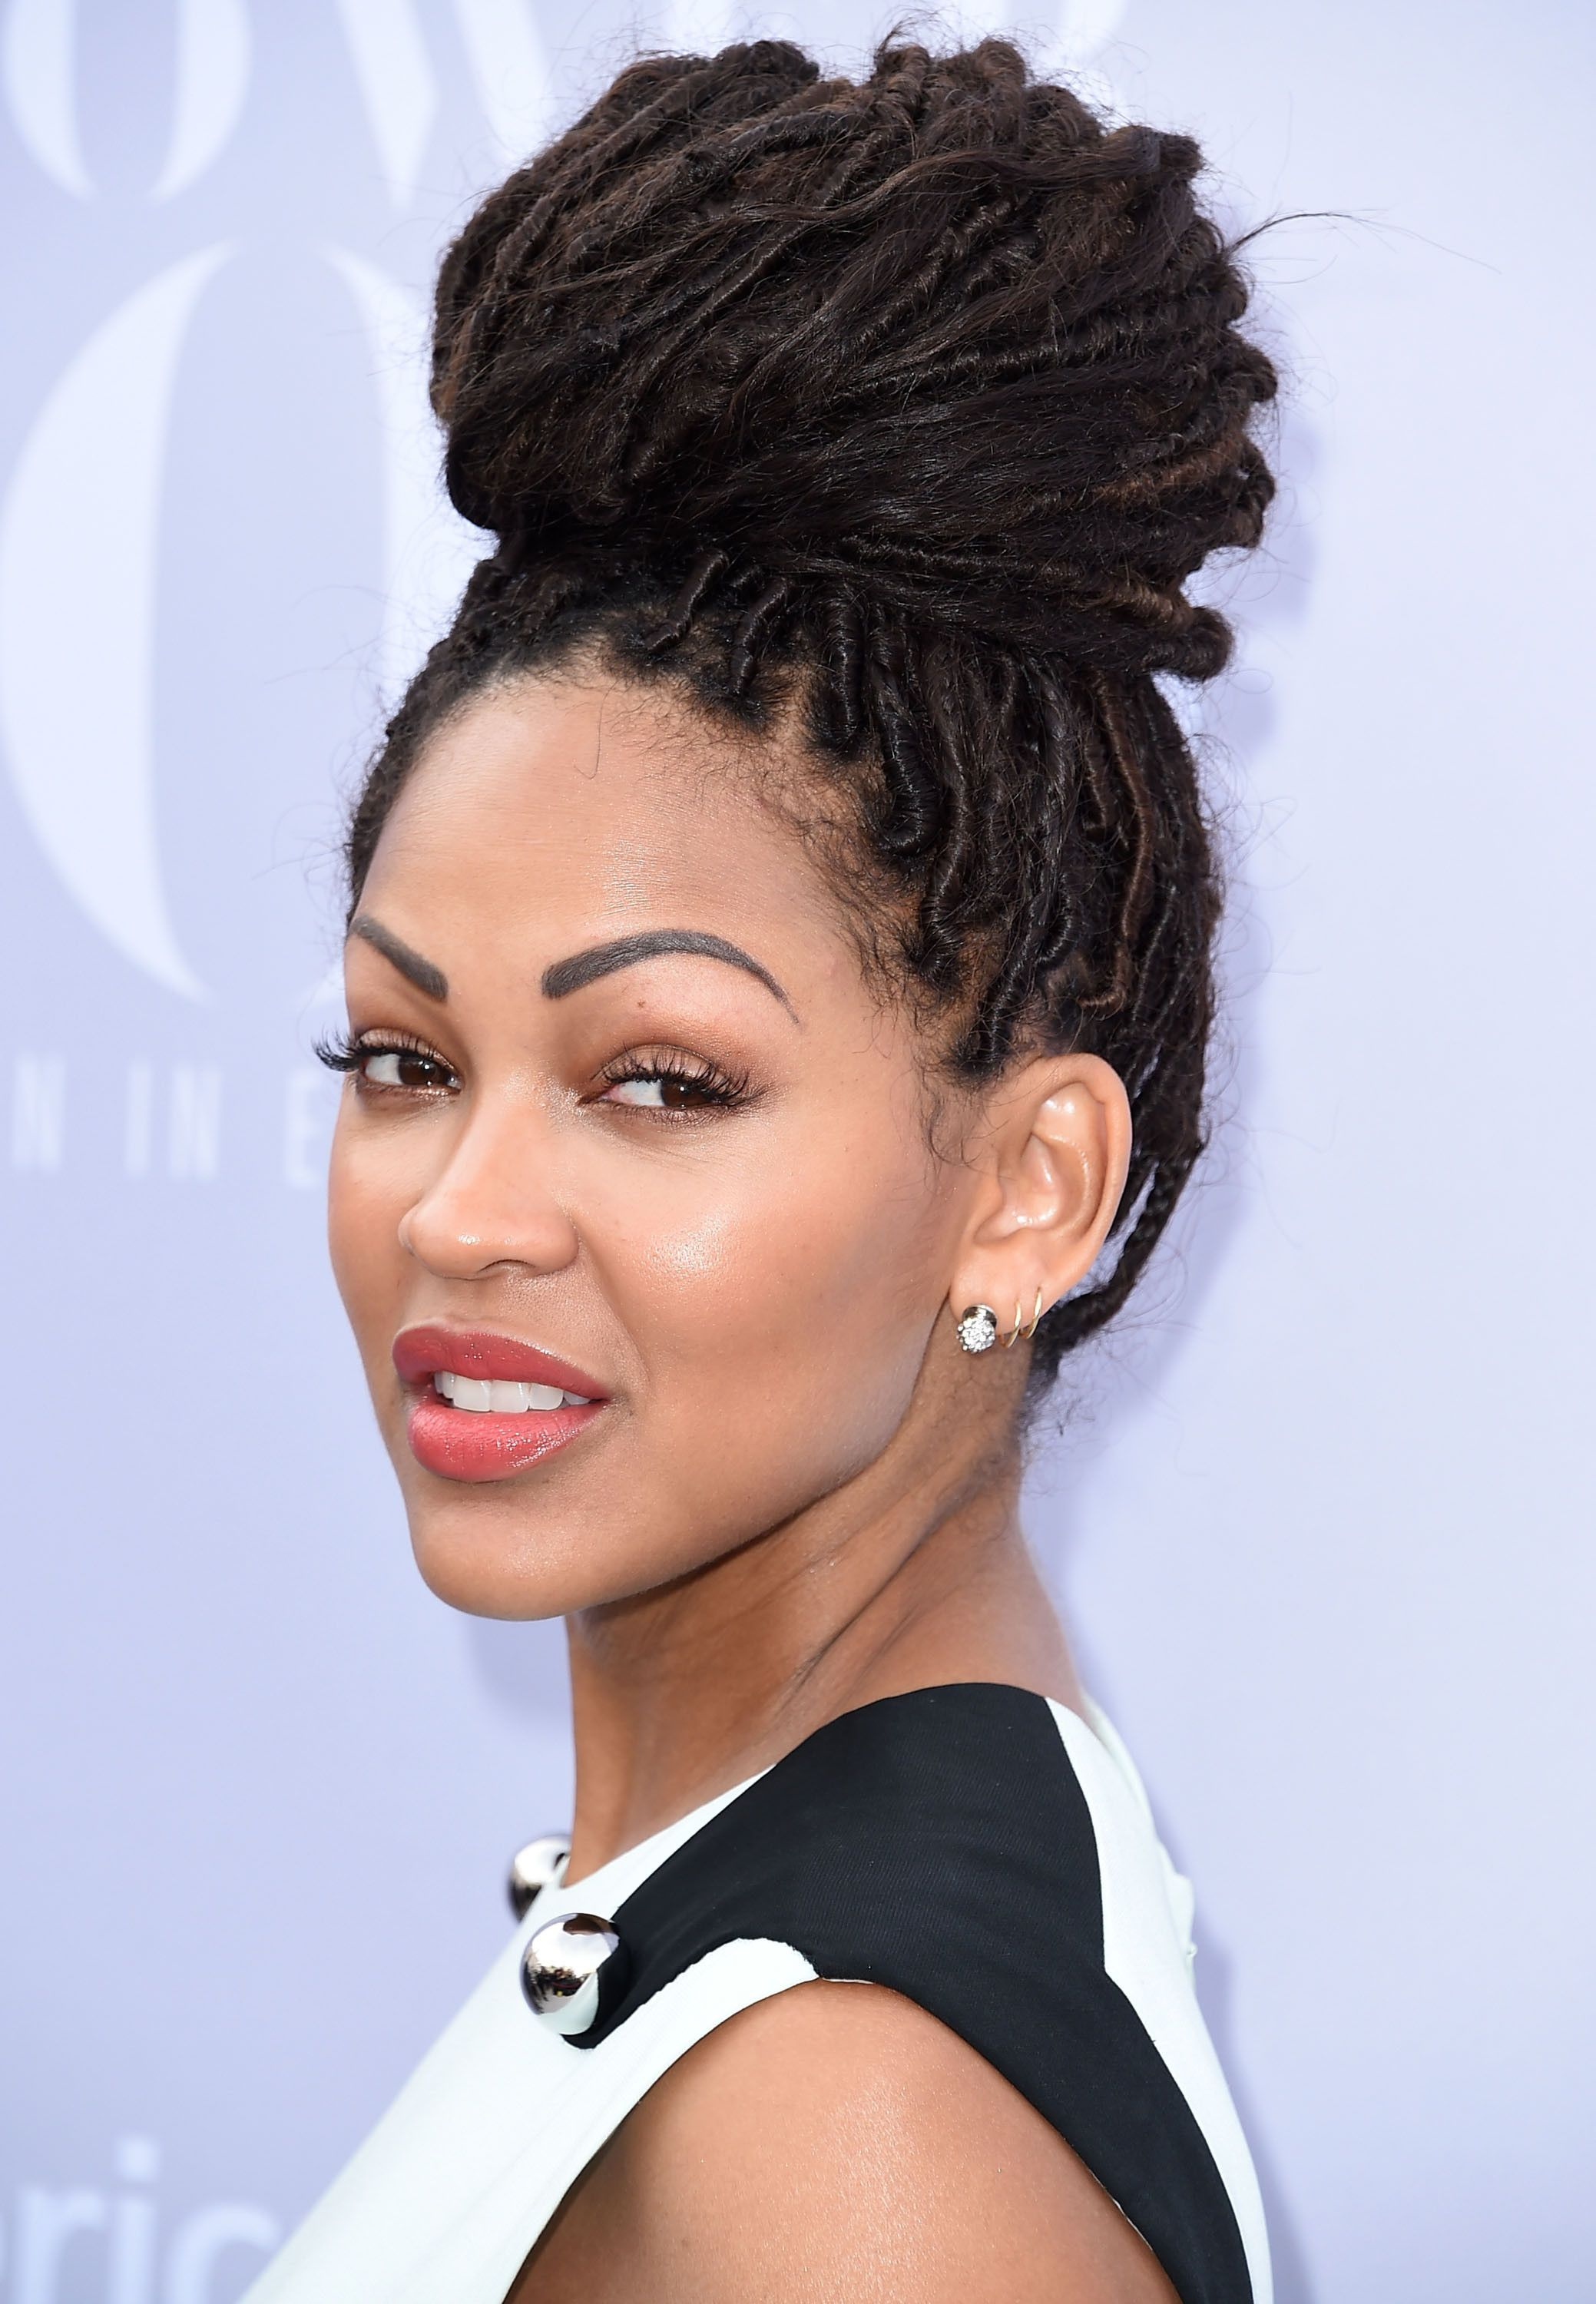 10 Gorgeous dreadlocks hairstyles youll want to copy Meagan Good  Dreadlocks Locs and Faux locs